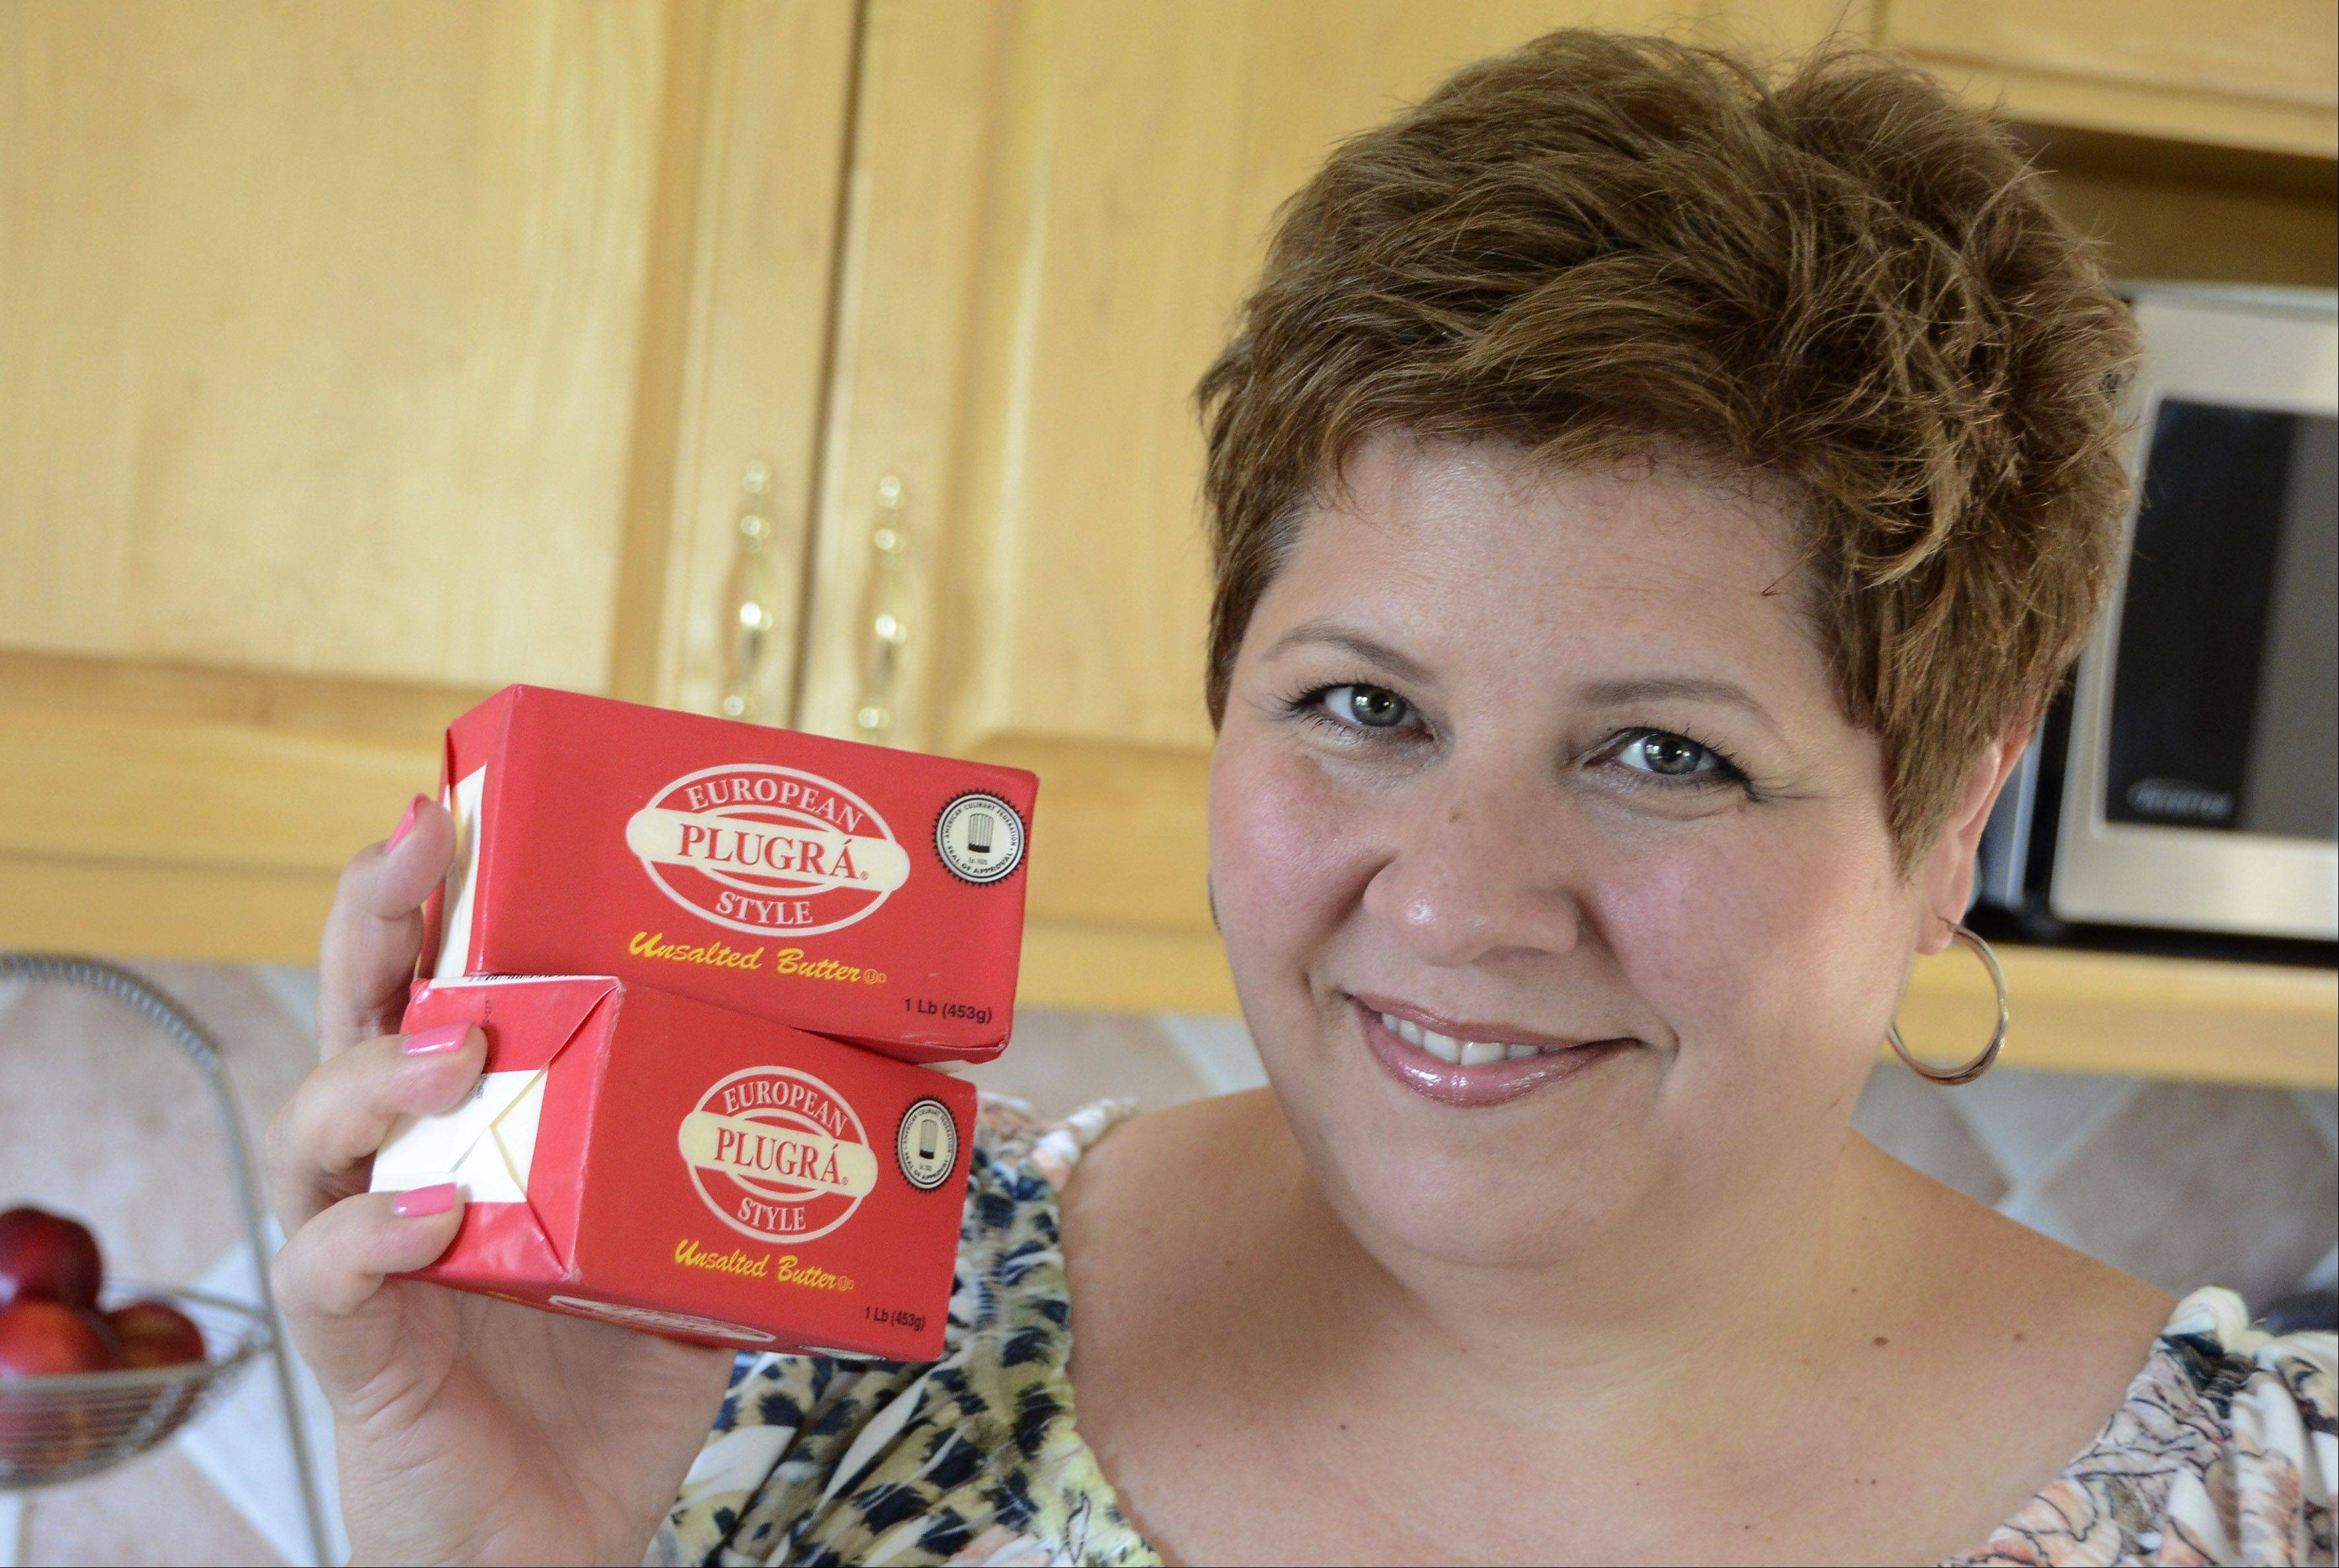 Louann Zundel of Des Plaines will compete in Round 2 of the Cook of the Week Challenge.